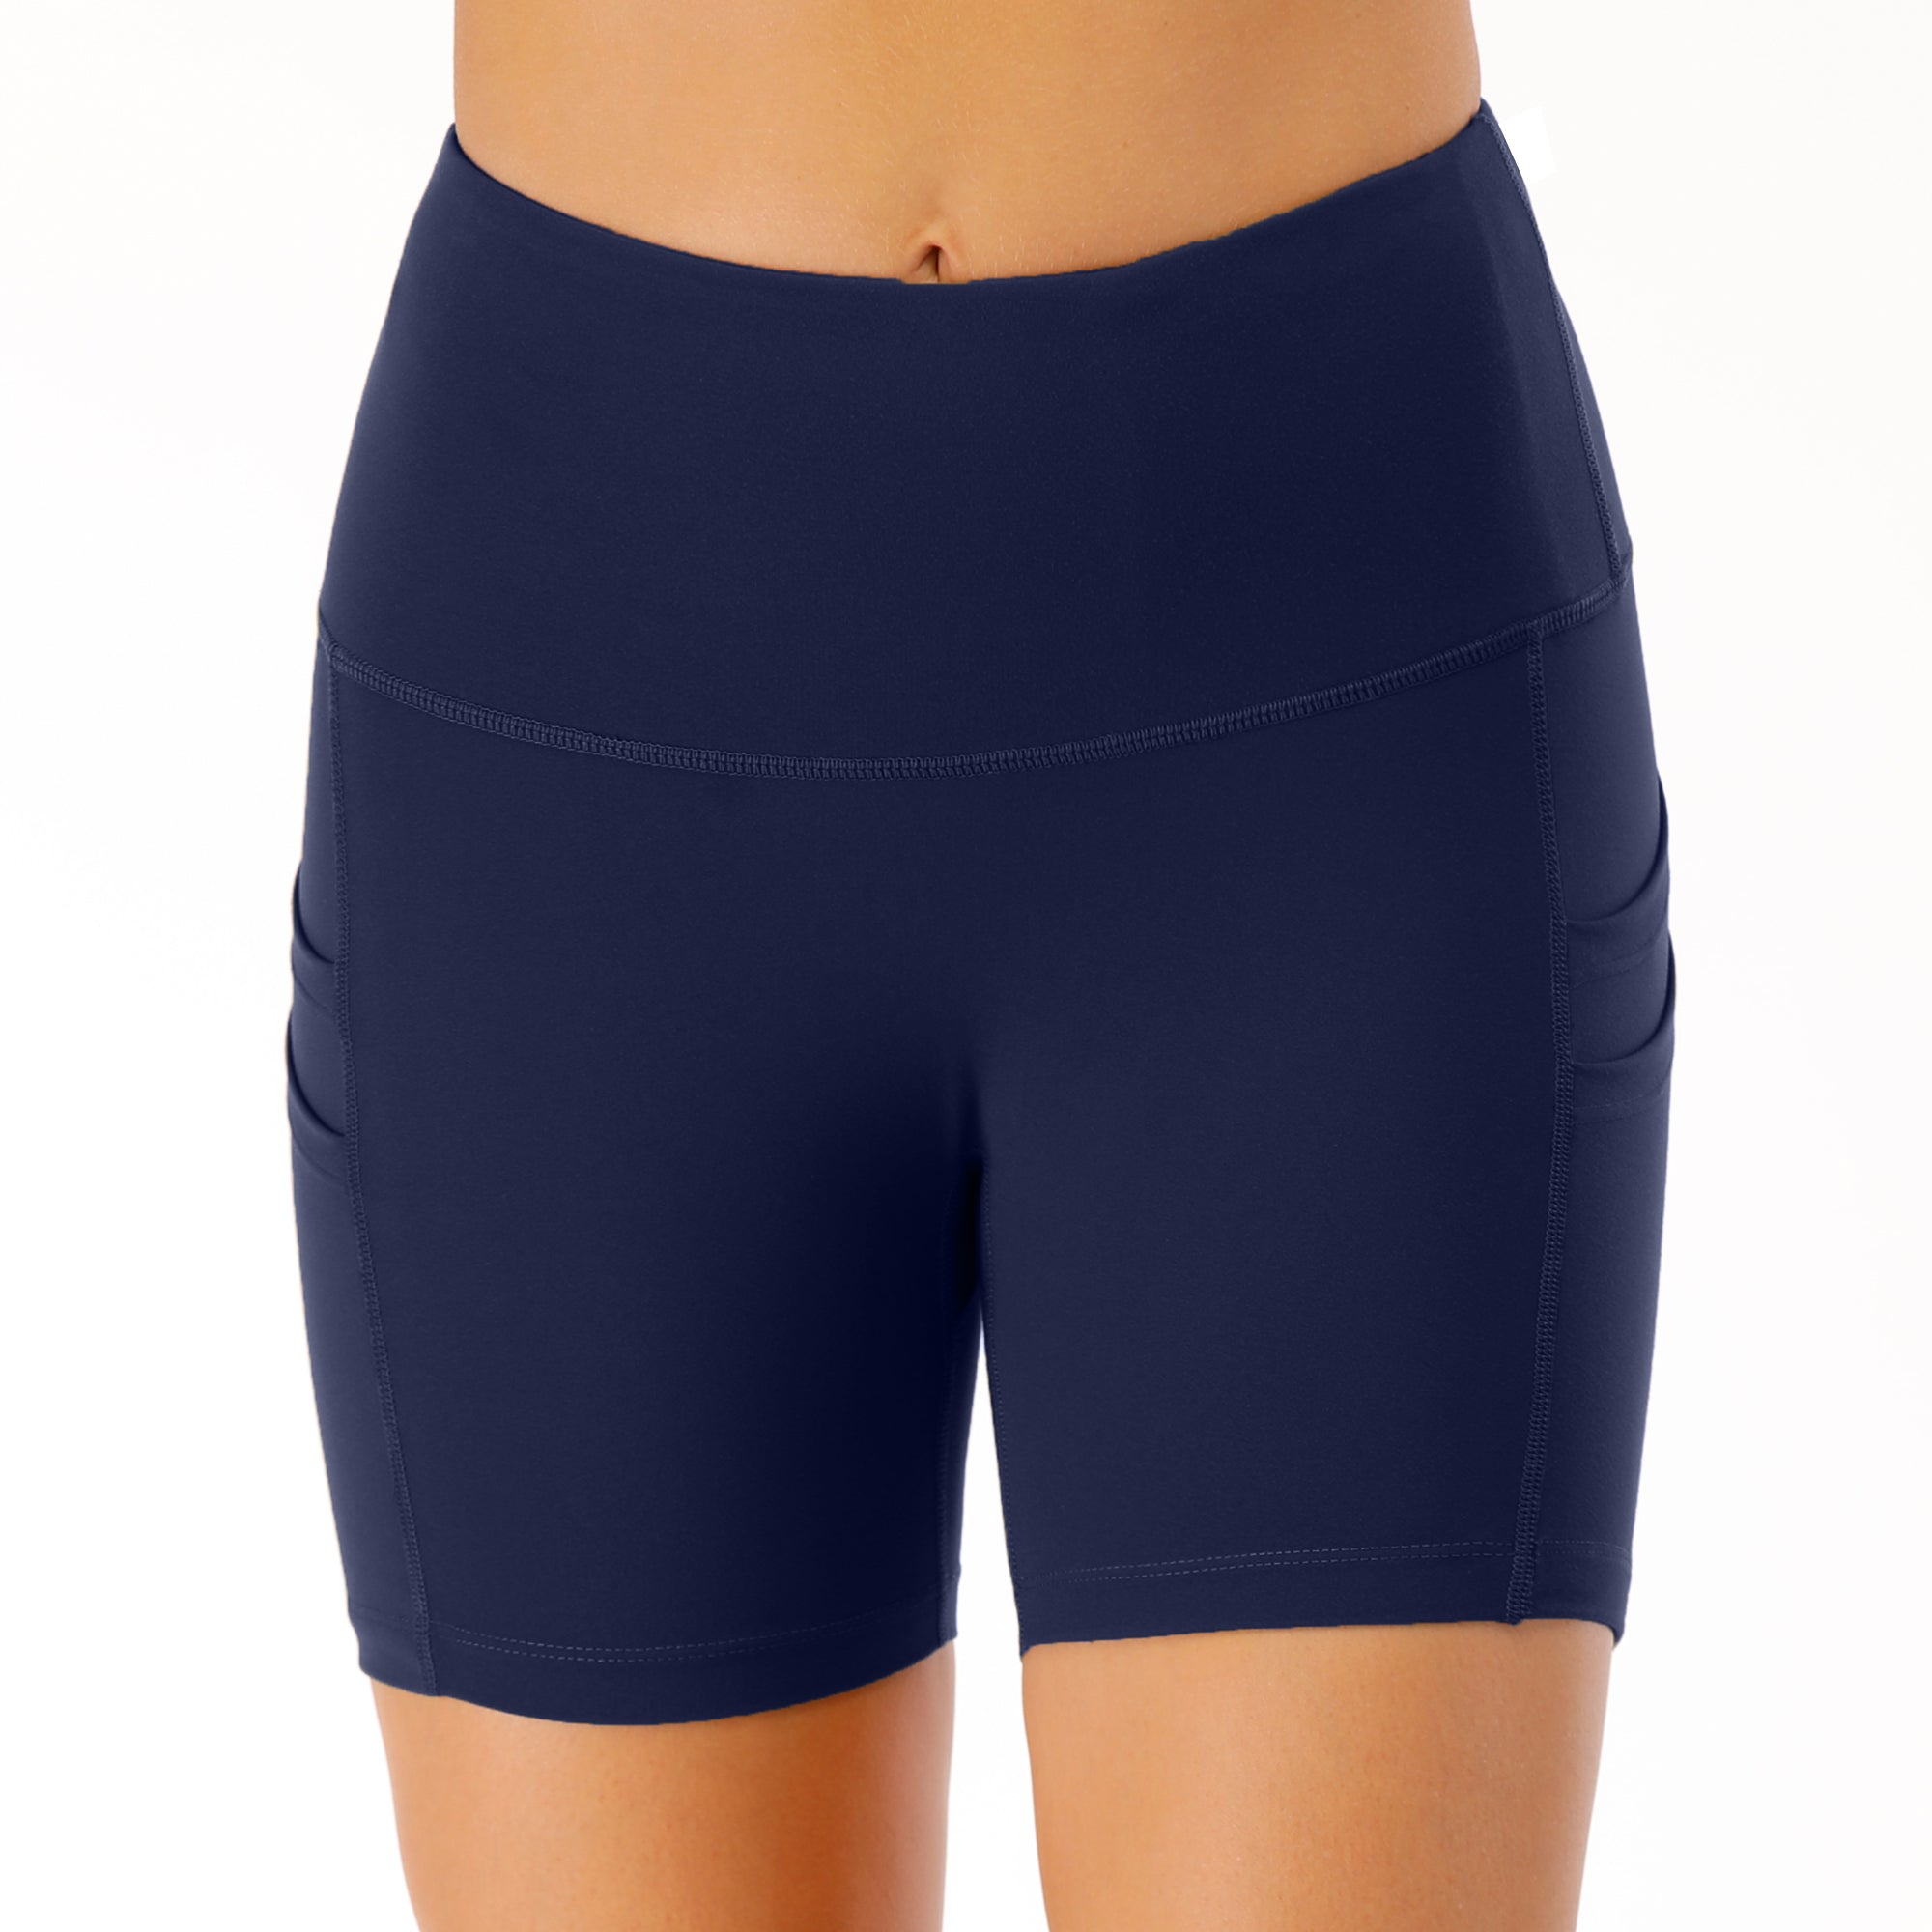 Women's Running Shorts with Phone Pocket image 6